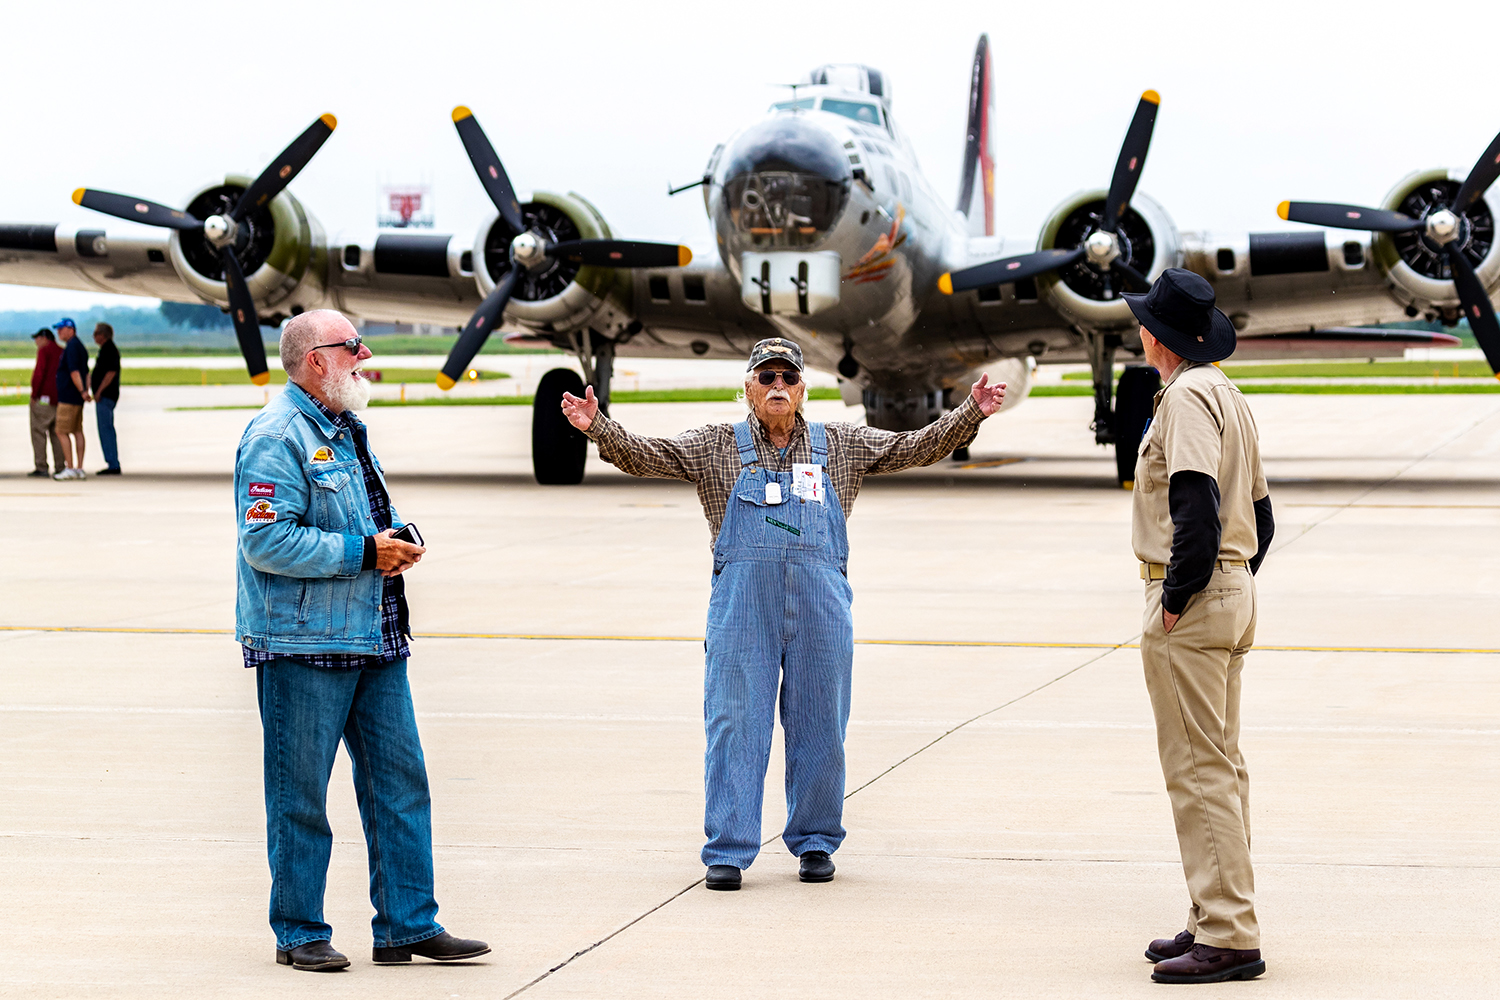 Robert H. Clark of Cedar Rapids shares a story with the crew of the Experimental Aircraft Association's B-17G bomber 'Aluminum Overcast' at the Eastern Iowa Airport in Cedar Rapids on Tuesday, June 18, 2019. Clark flew 53 missions as a ball turret gunner on B-17s while assigned to the 322nd Bomb Squadron, 91st Bomb Group at Bassingbone Air Base in England during World War Two. (David Harmantas/Freelance)